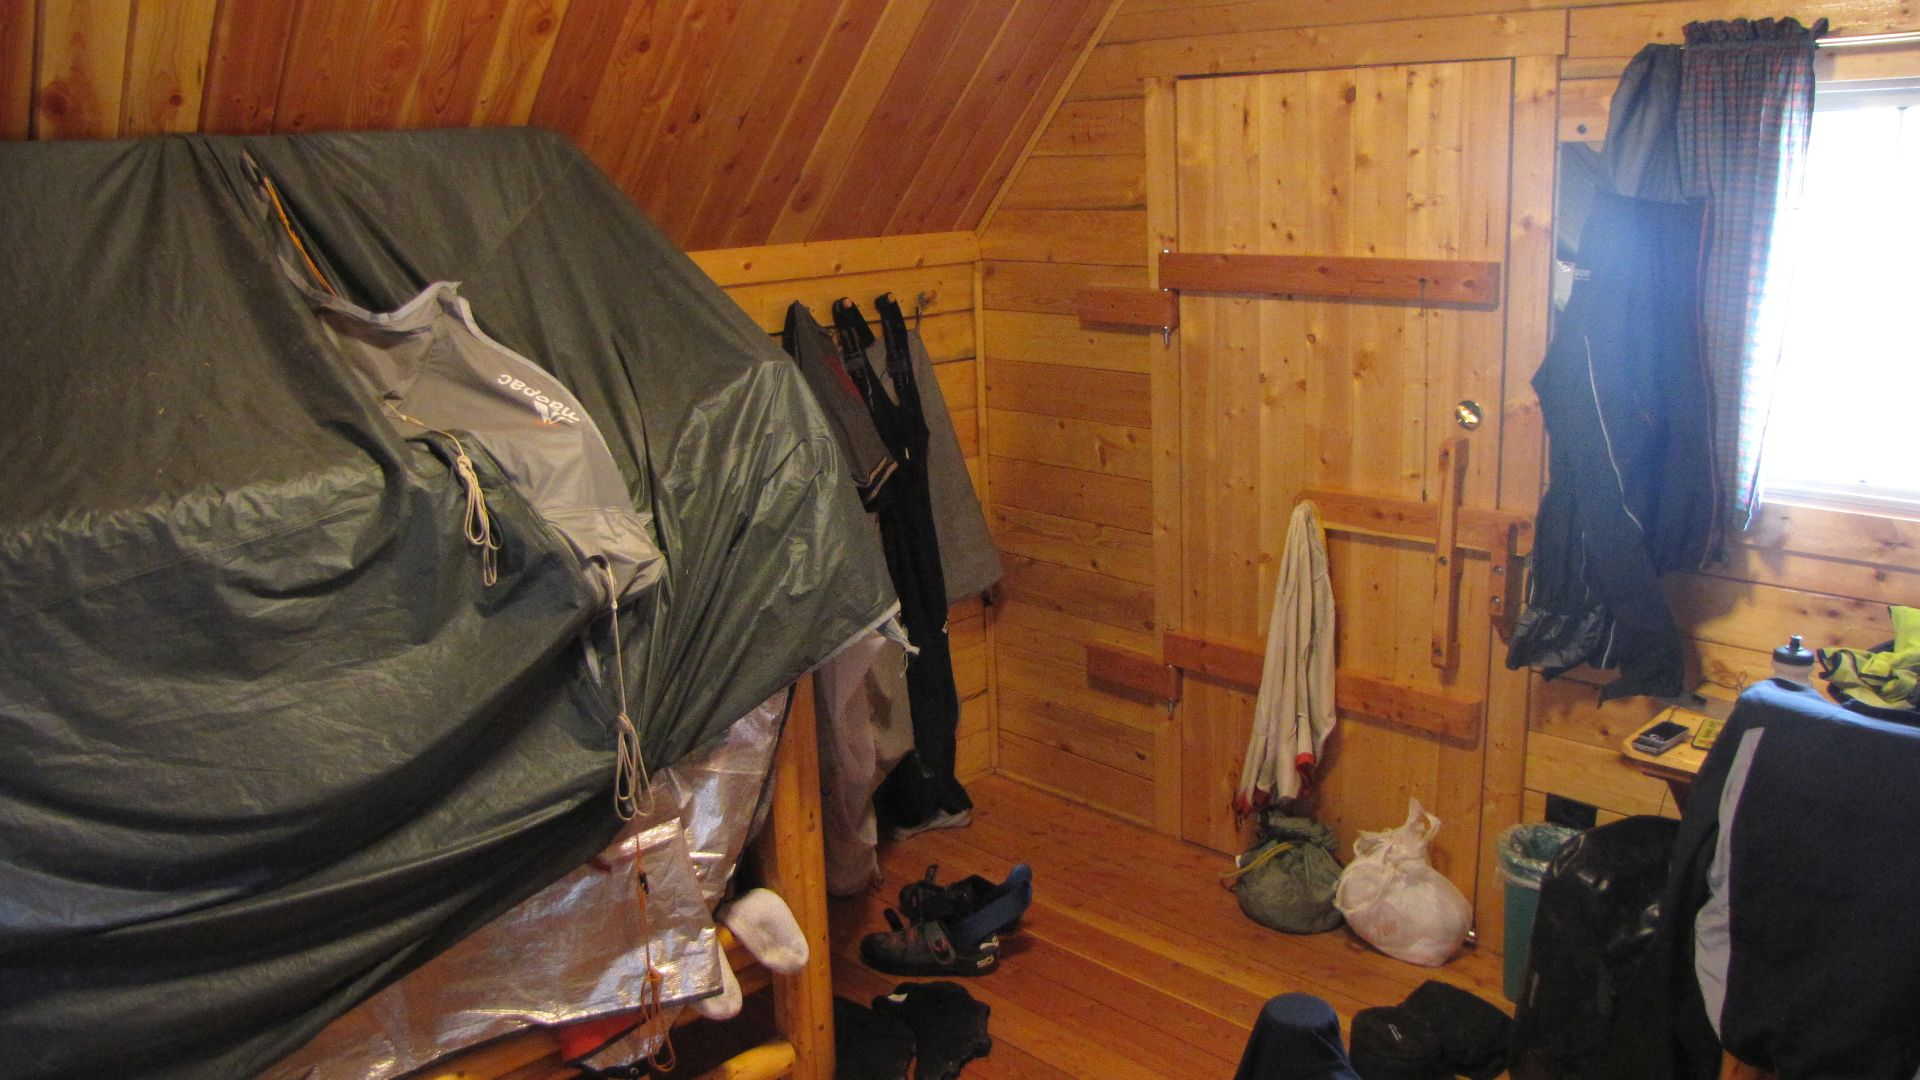 Nr Fort Collins, CO, USA - After packing tent in the snow & riding through falling snow I book into a Cabin to dry-out